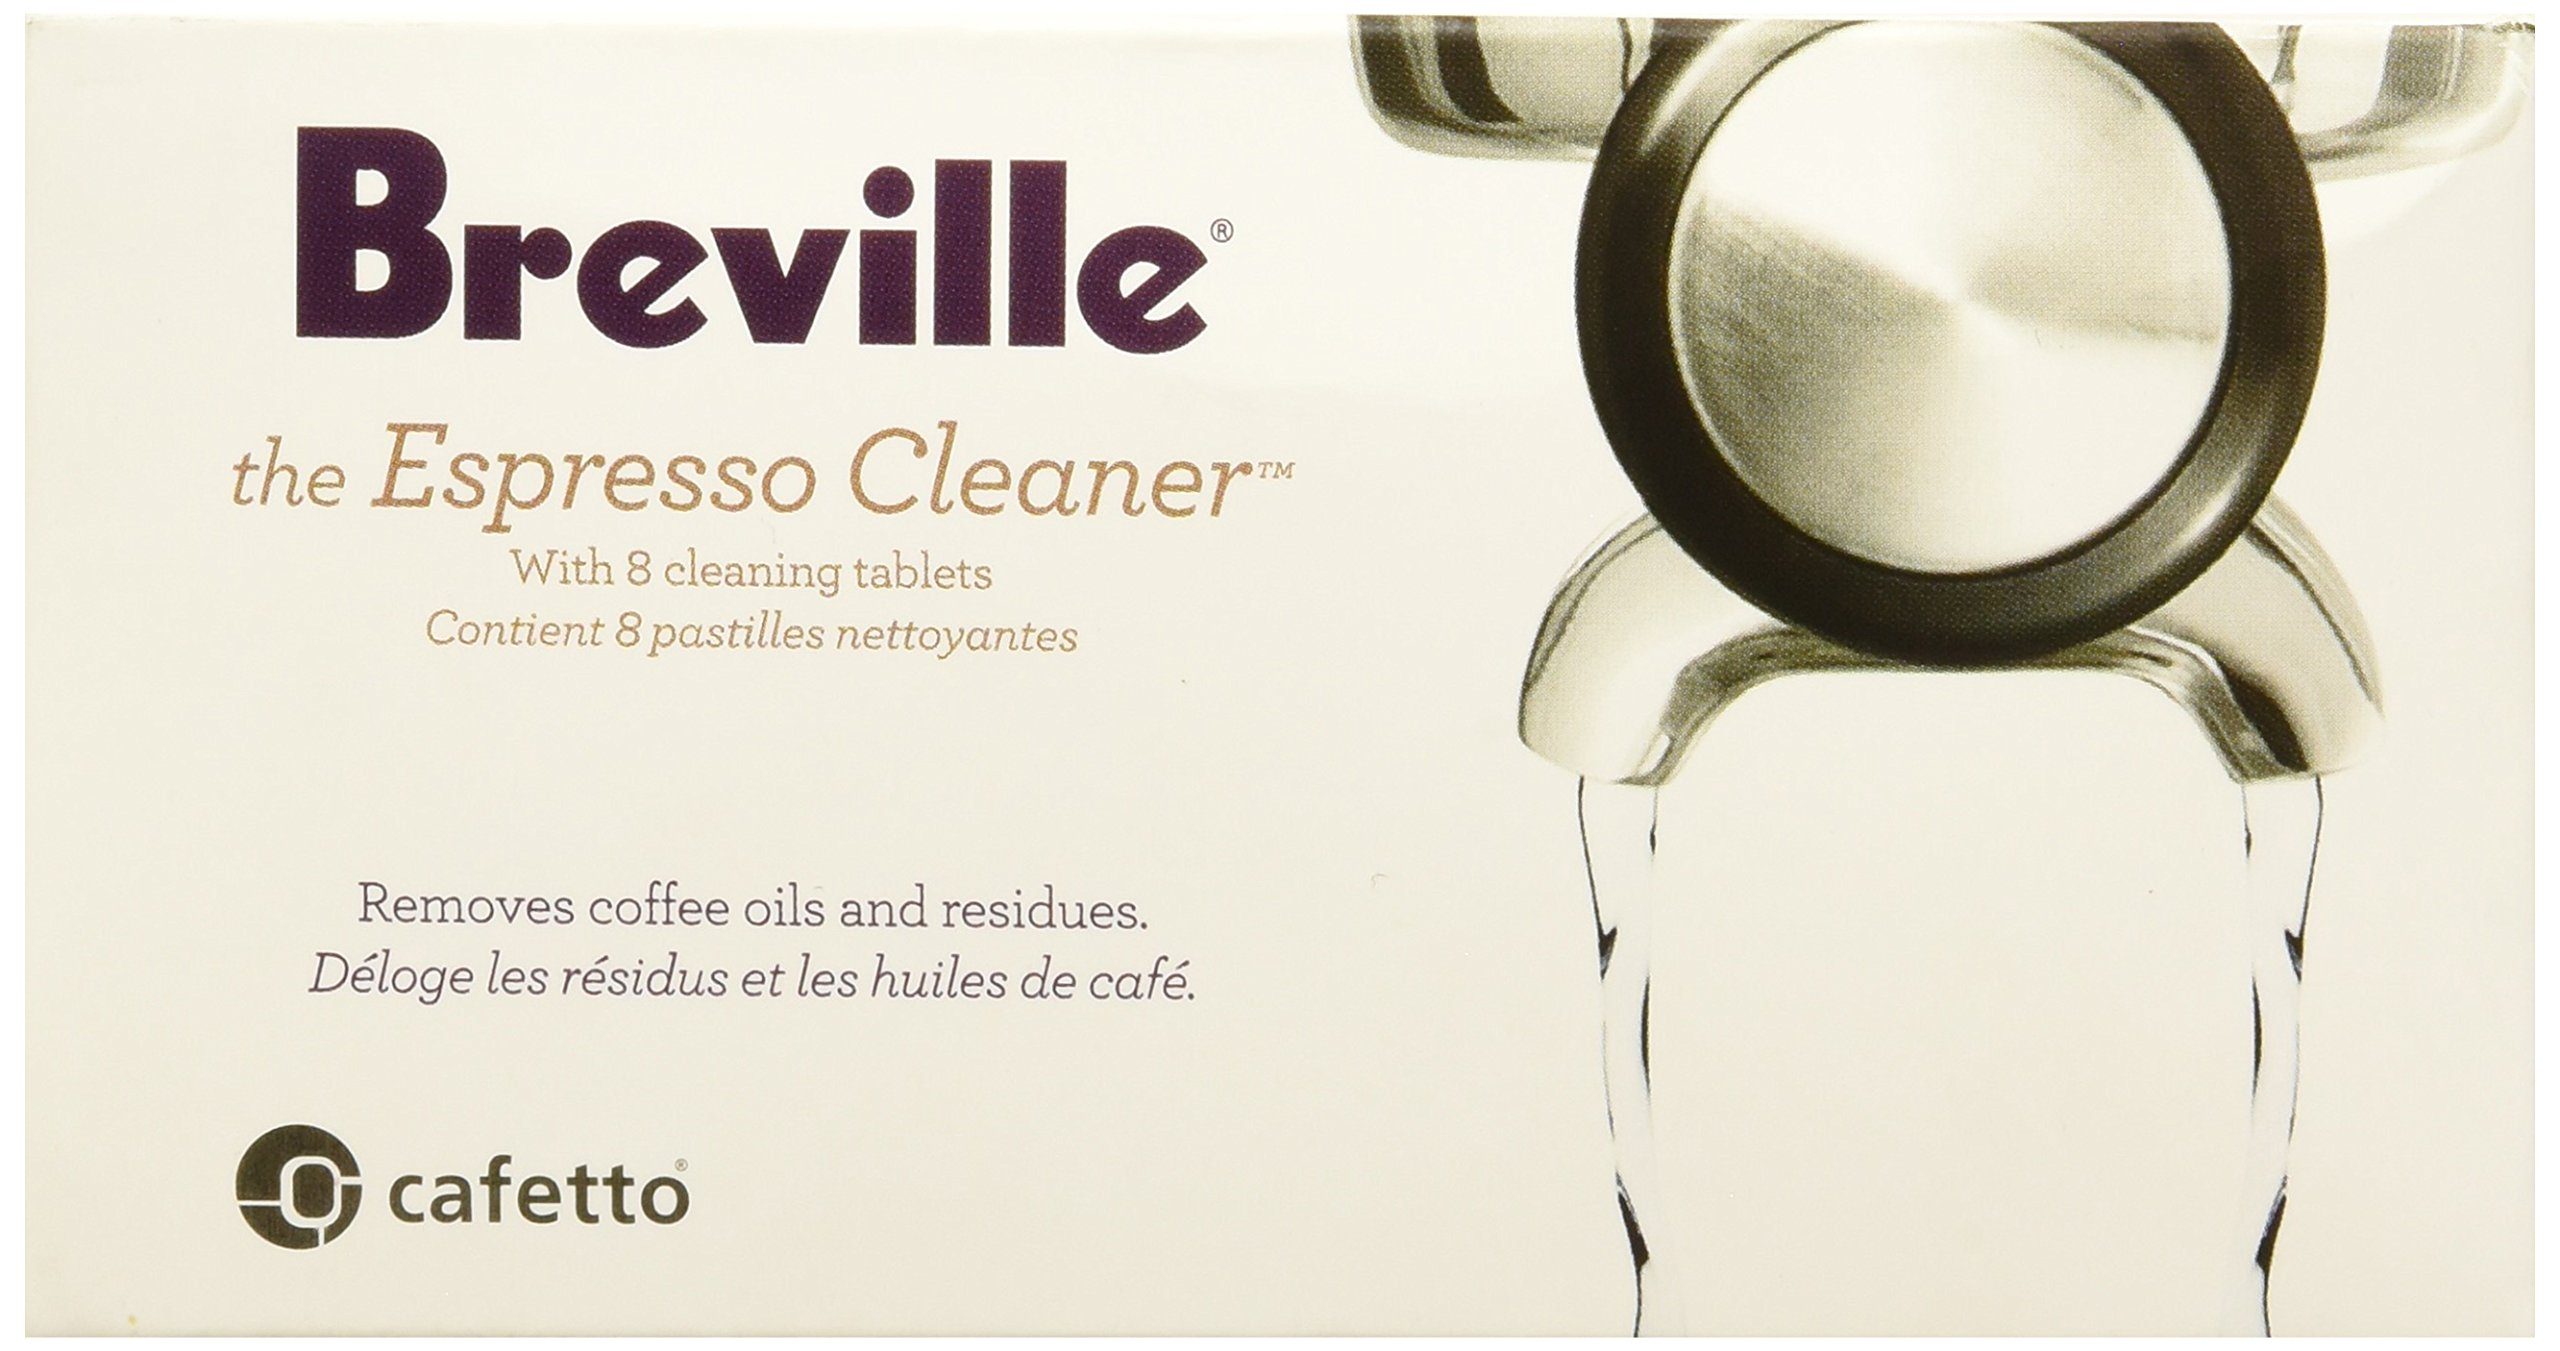 Breville BEC25000US1 BEC250 Espresso Cleaning Tablets (8), White product image